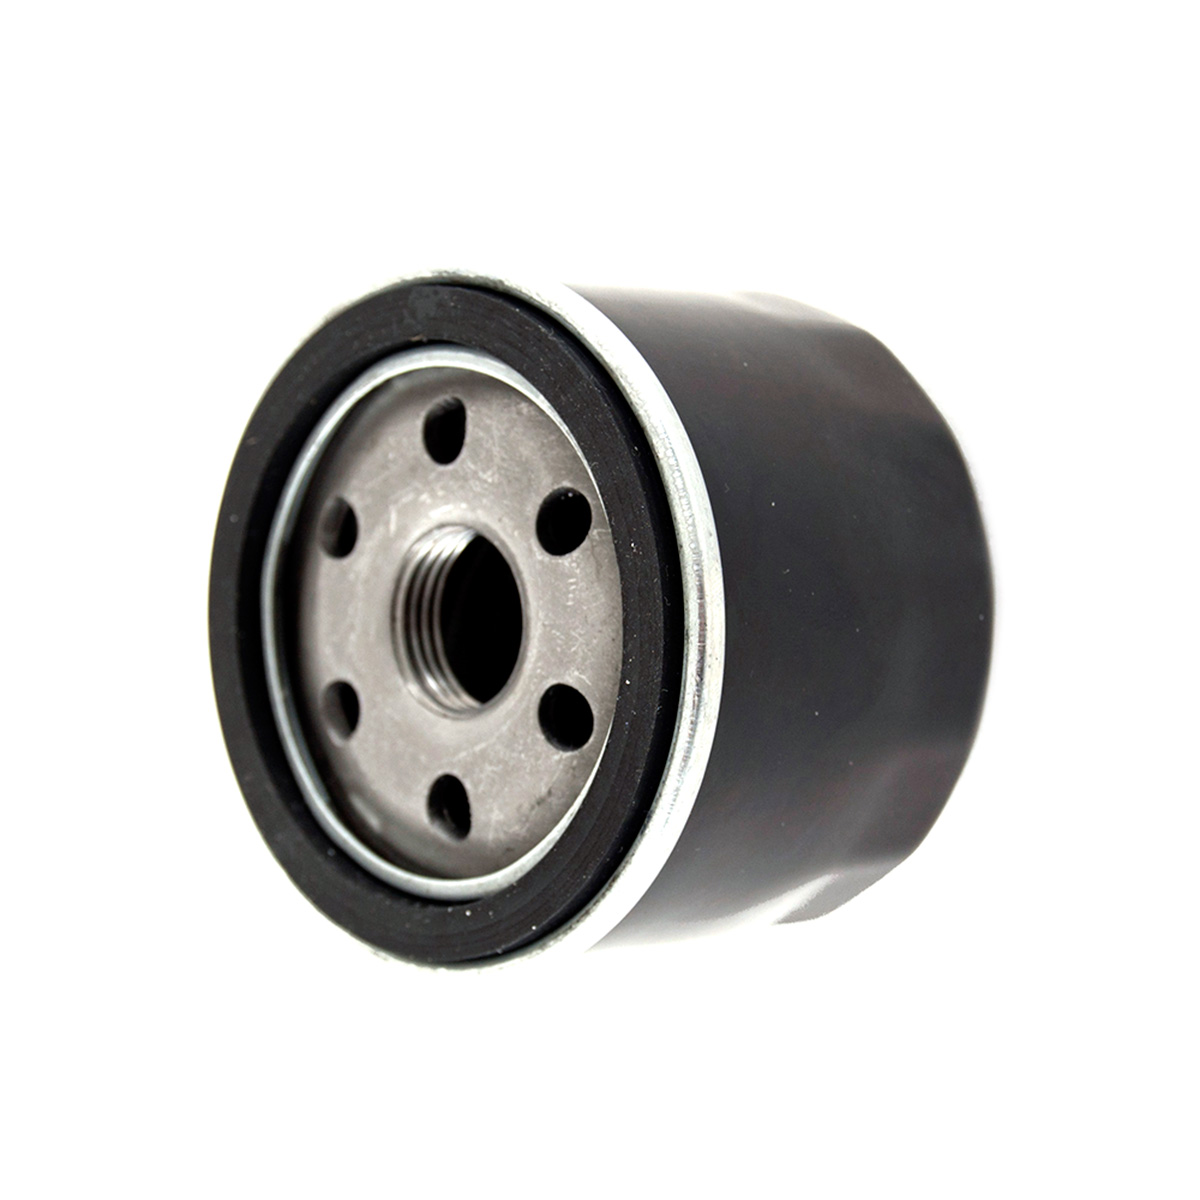 Engine Oil Filter 951-12690